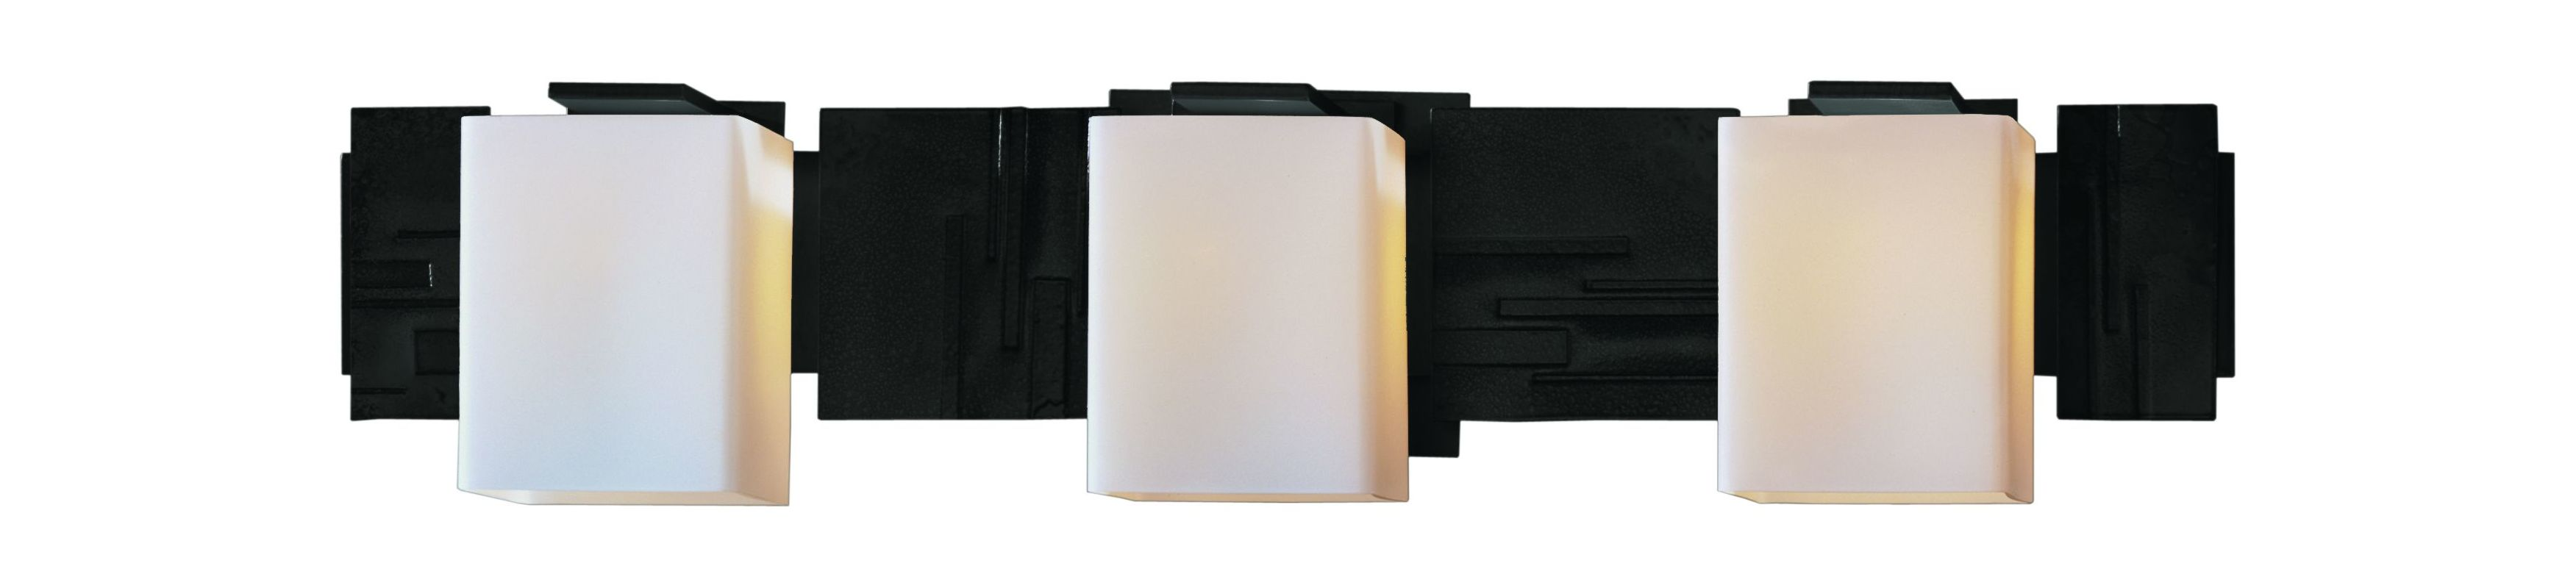 Hubbardton Forge 207843 3 Light Down Lighting Wall Sconce from the